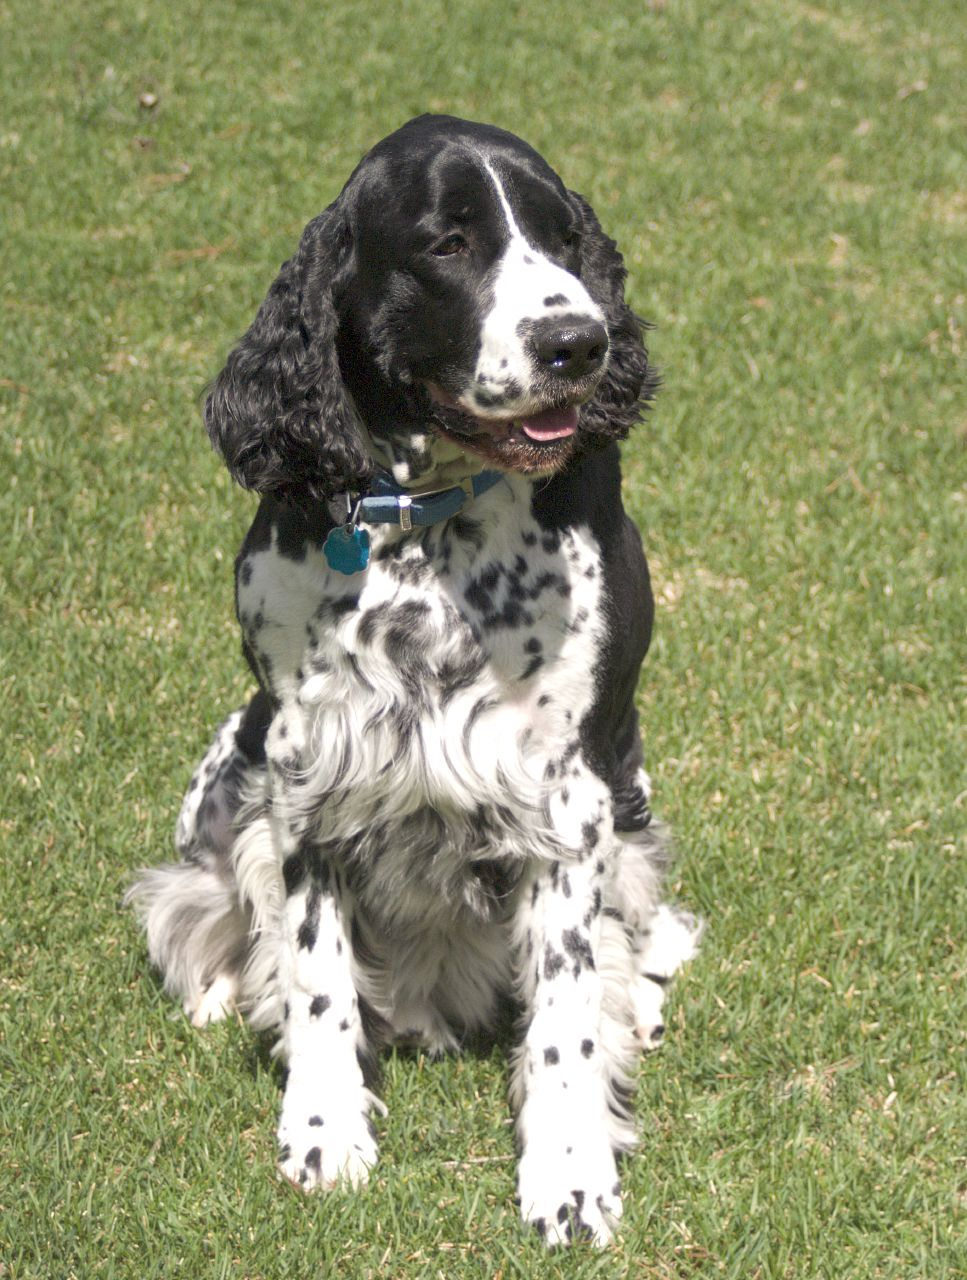 http://upload.wikimedia.org/wikipedia/commons/4/4e/English_Springer_Spaniel_black_sitting.jpg